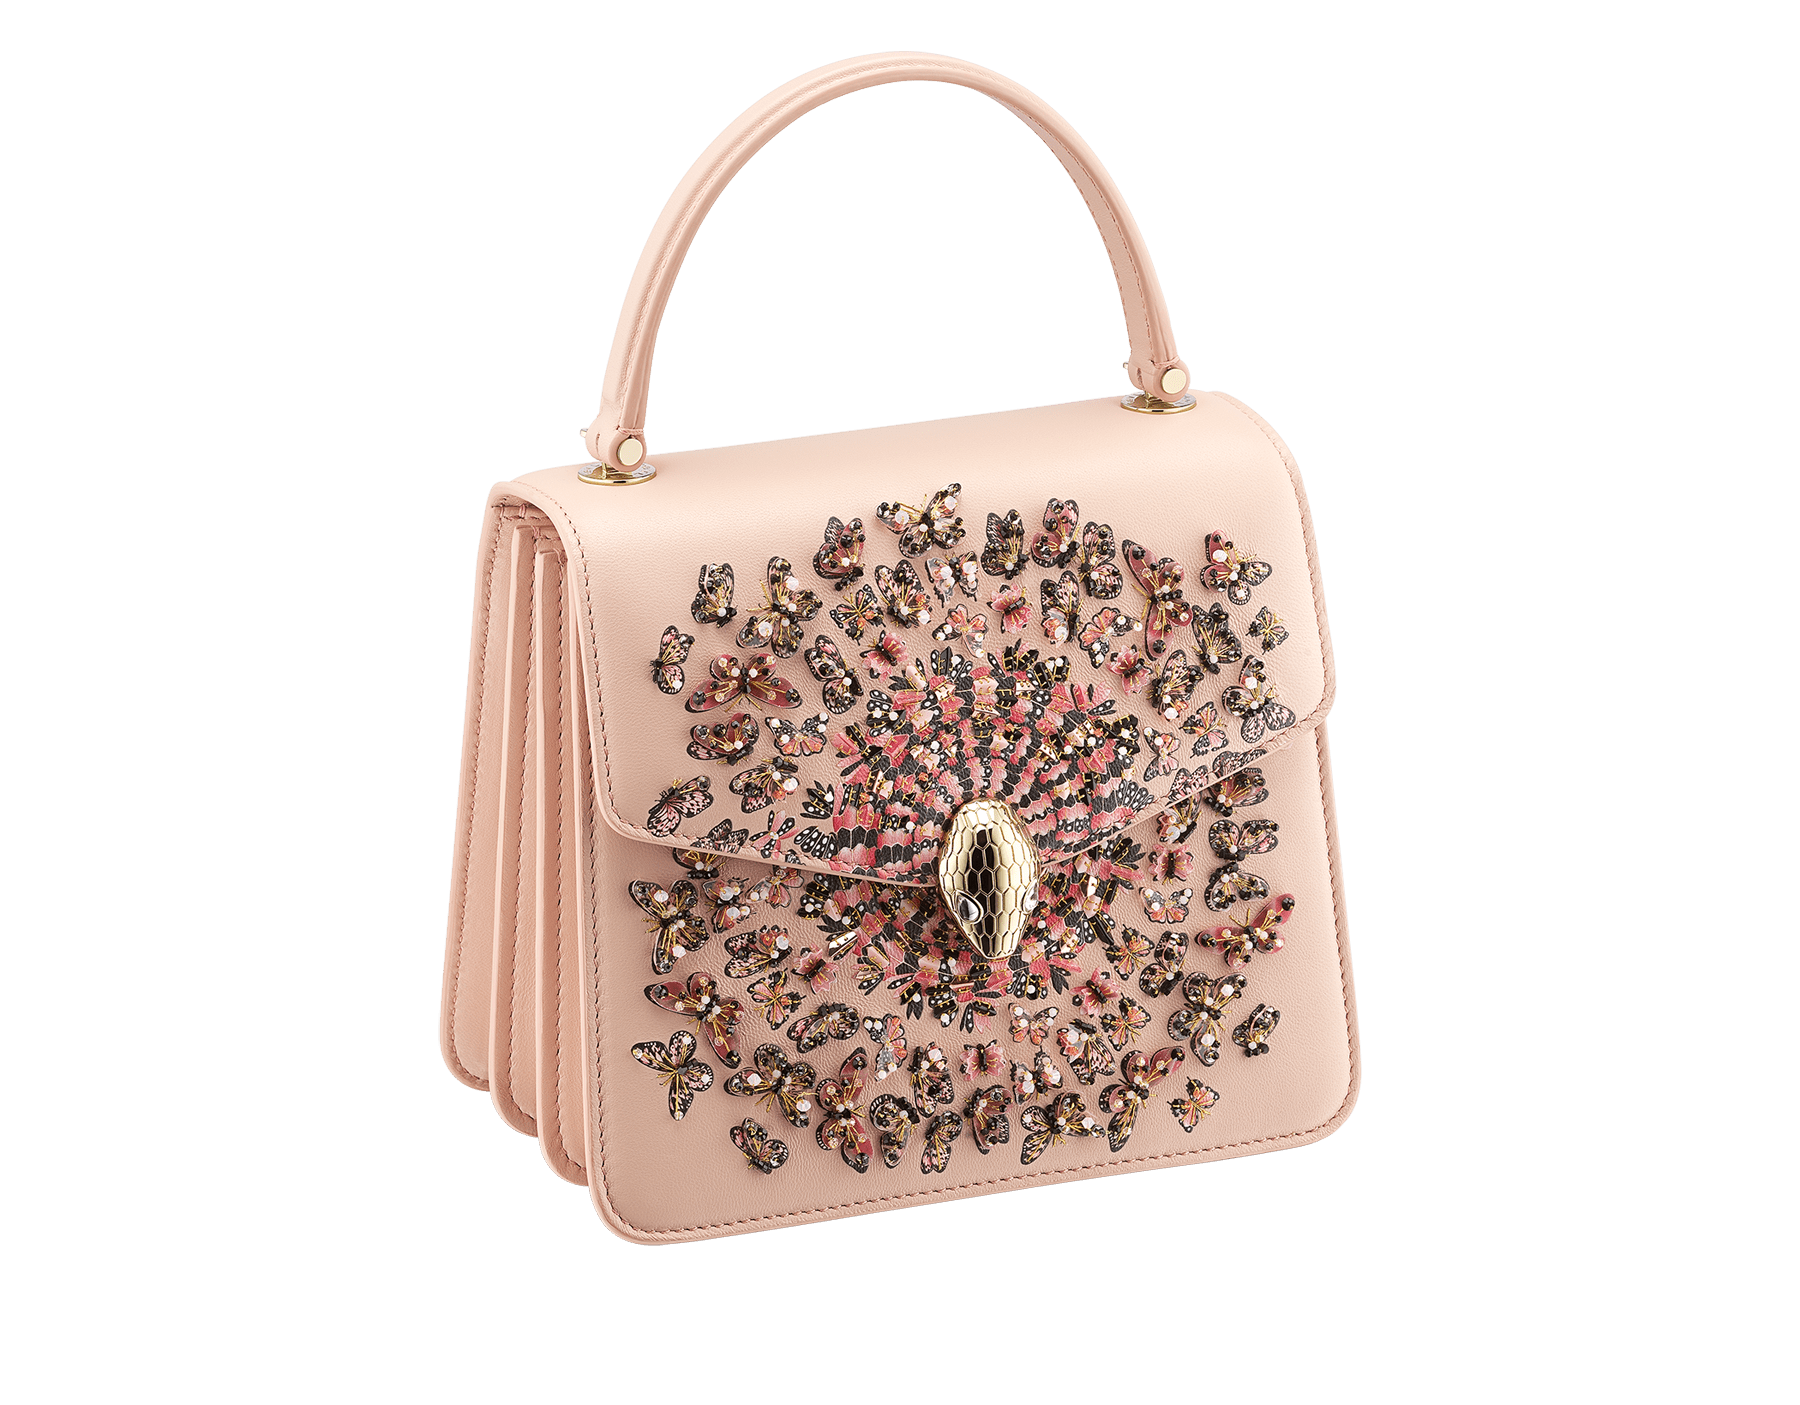 """Mary Katrantzou x Bvlgari"" top handle bag in black nappa leather, with black nappa leather inner lining. New Serpenti head closure in gold-plated brass, finished with seductive crystal eyes. Special Edition. MK-Bejewelled image 2"